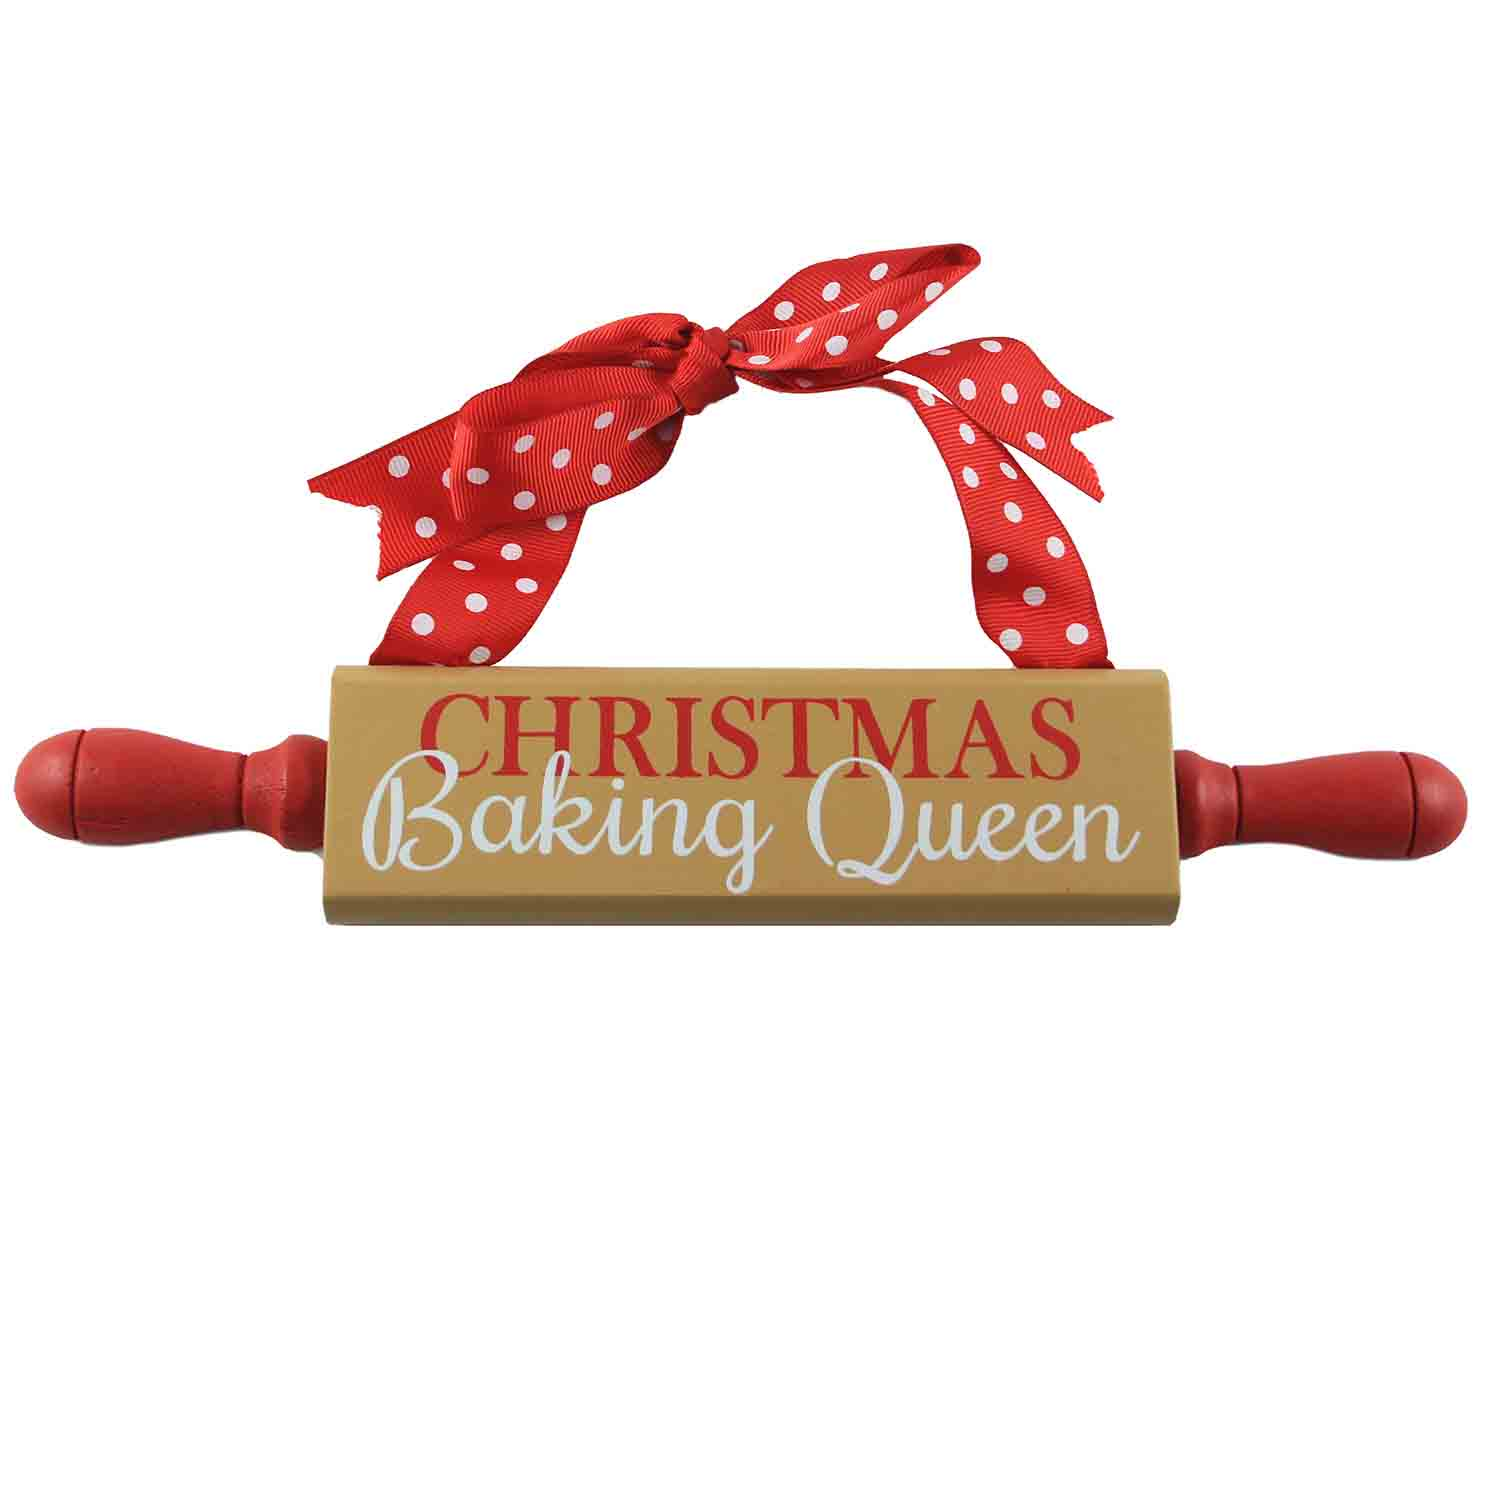 Christmas Baking Queen Rolling Pin Sign